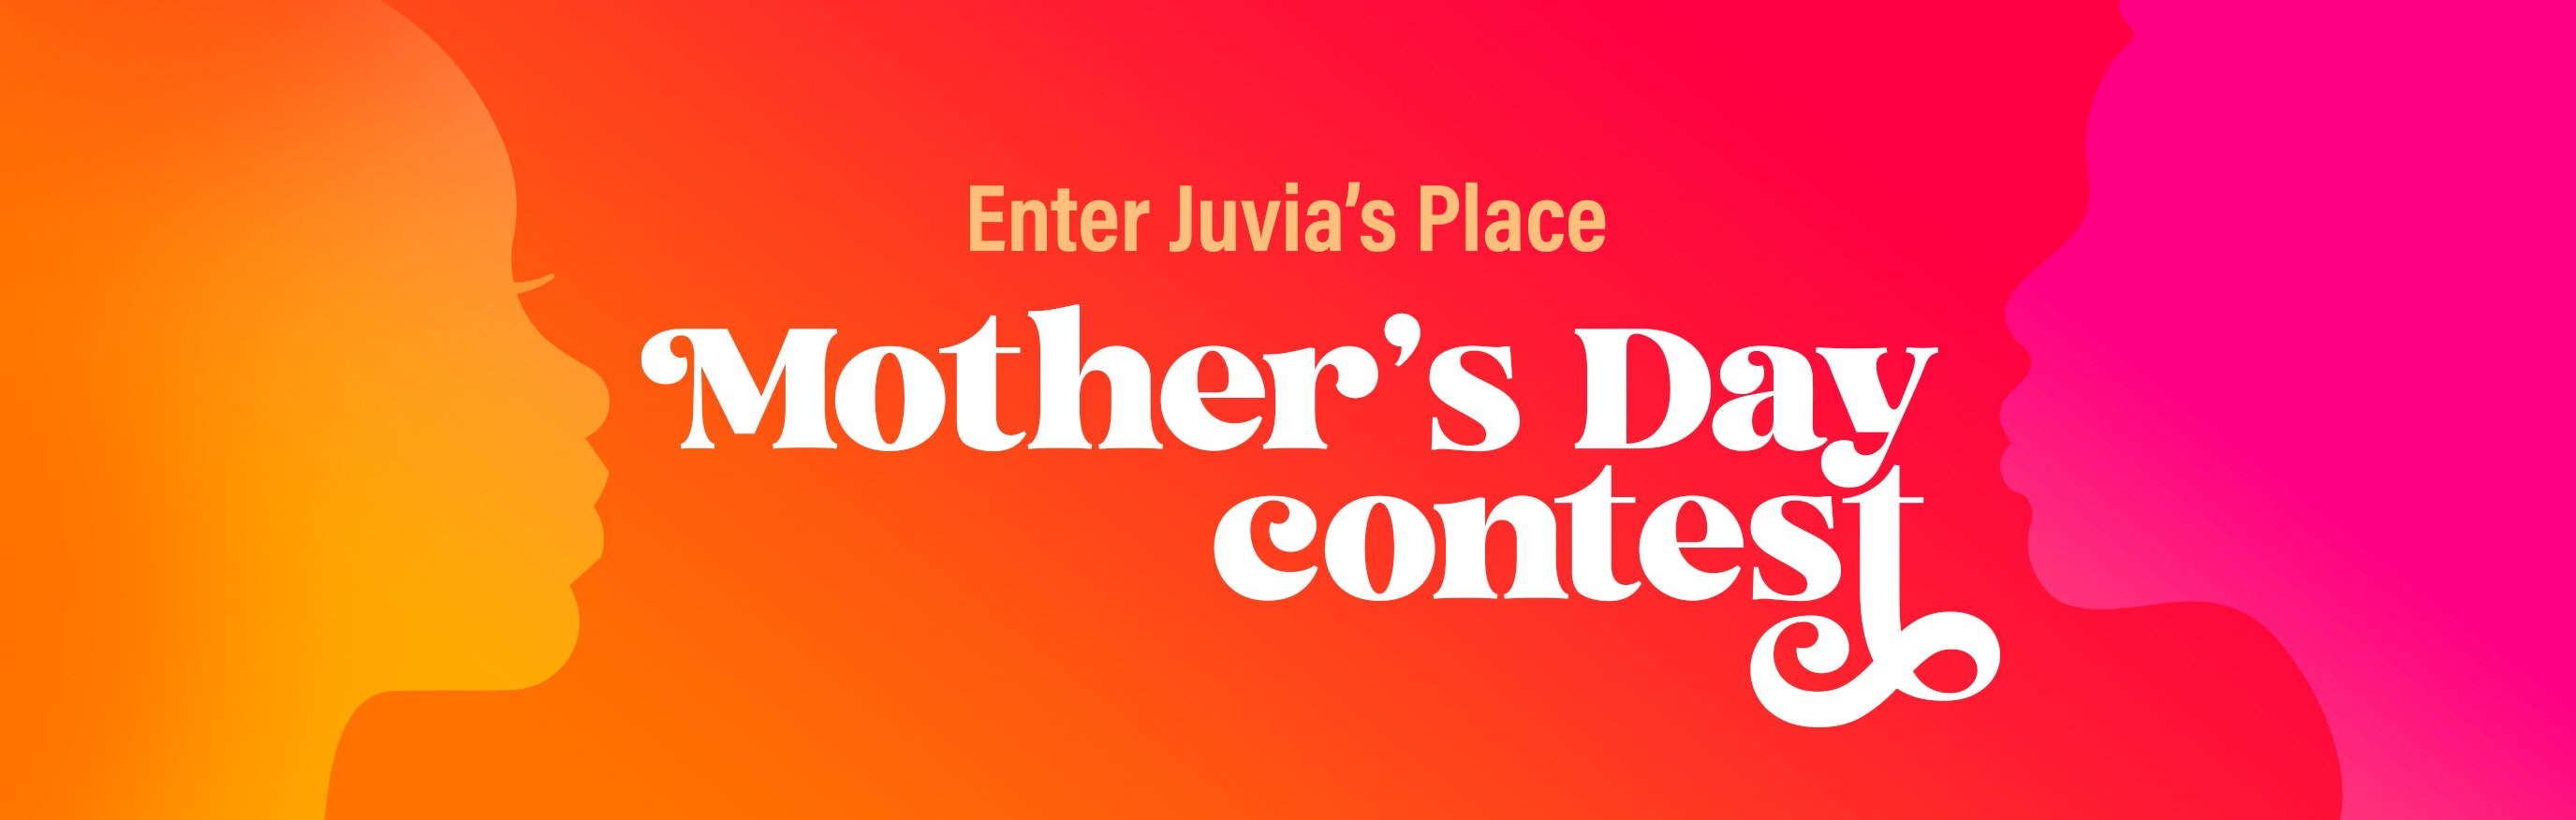 Juvia's Place Mother's Day Contest